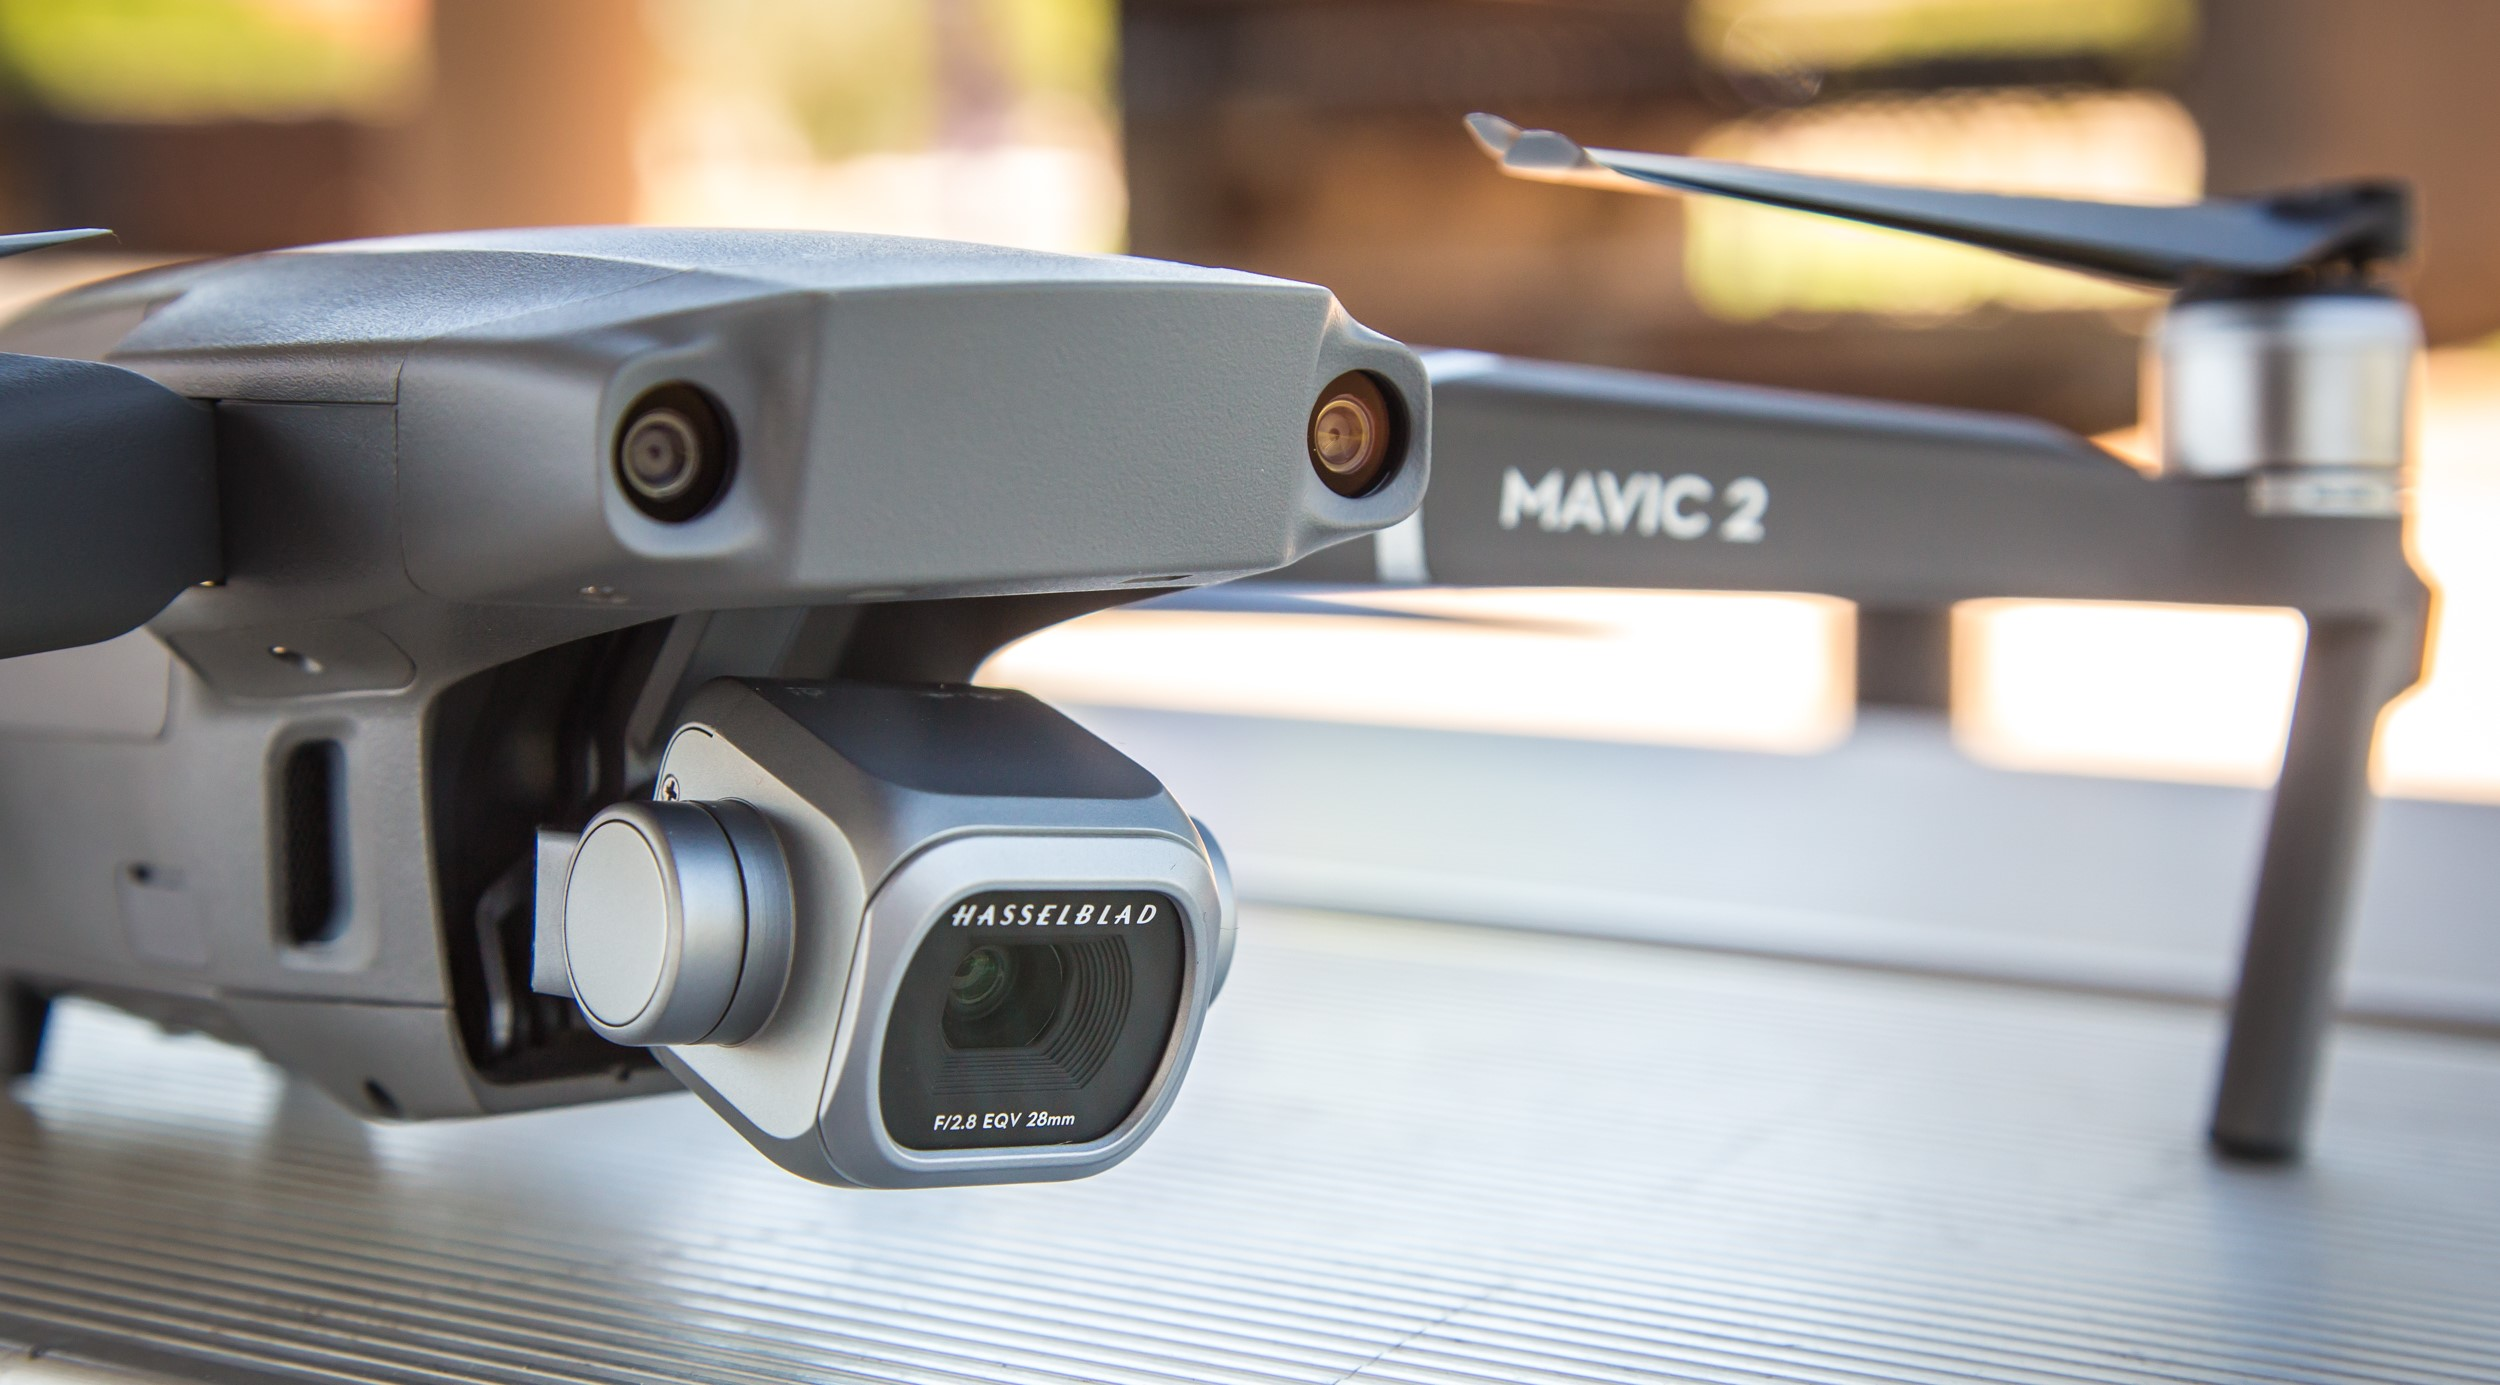 Mavic 2/Phantom 4 Pro… Great, but not really? (Photography)